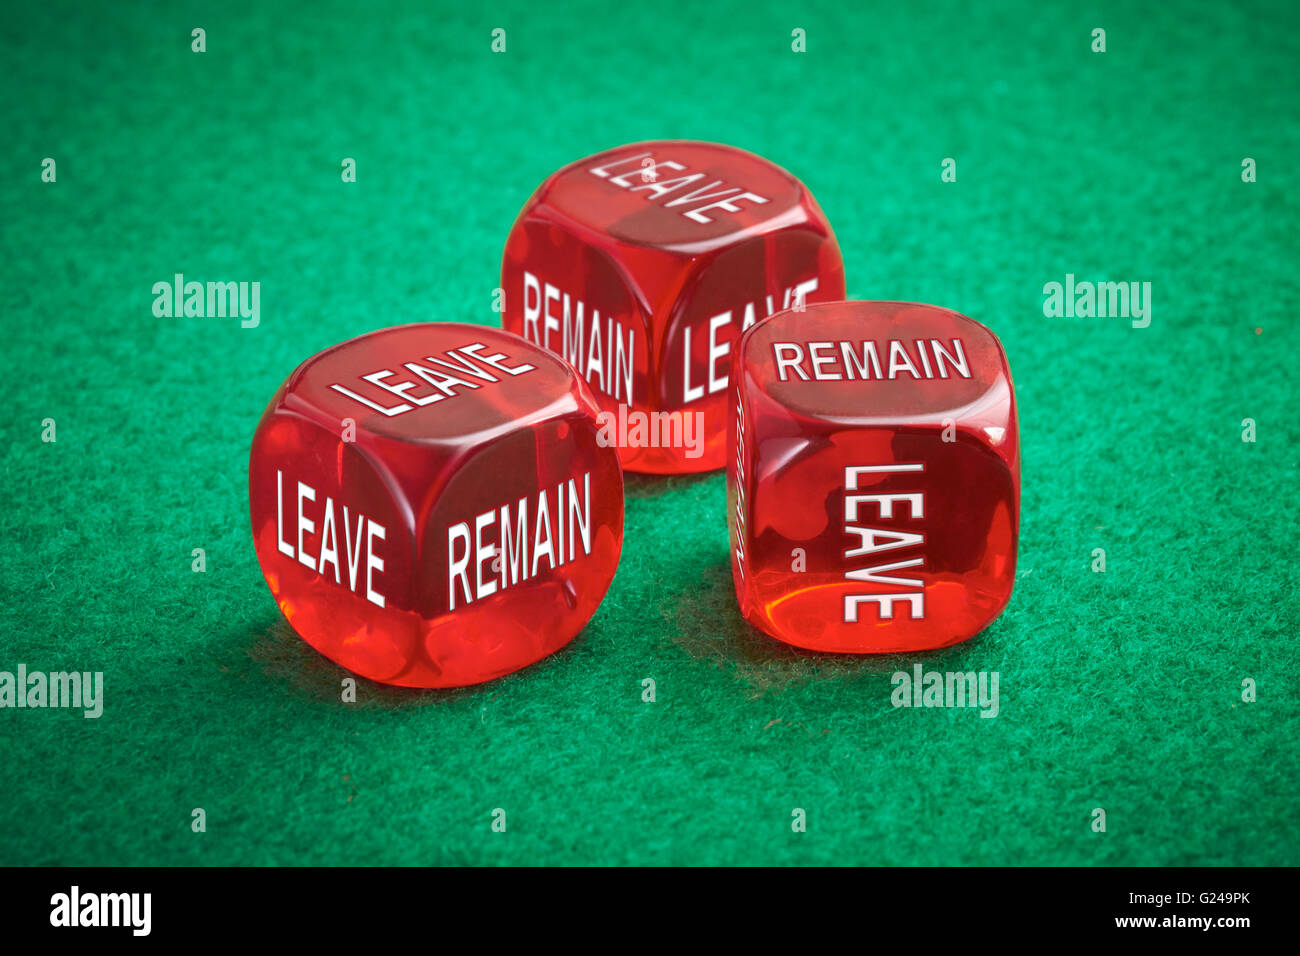 Leave or remain dice concept. United Kingdom European Elections to decide whether to leave the European Union for - Stock Image